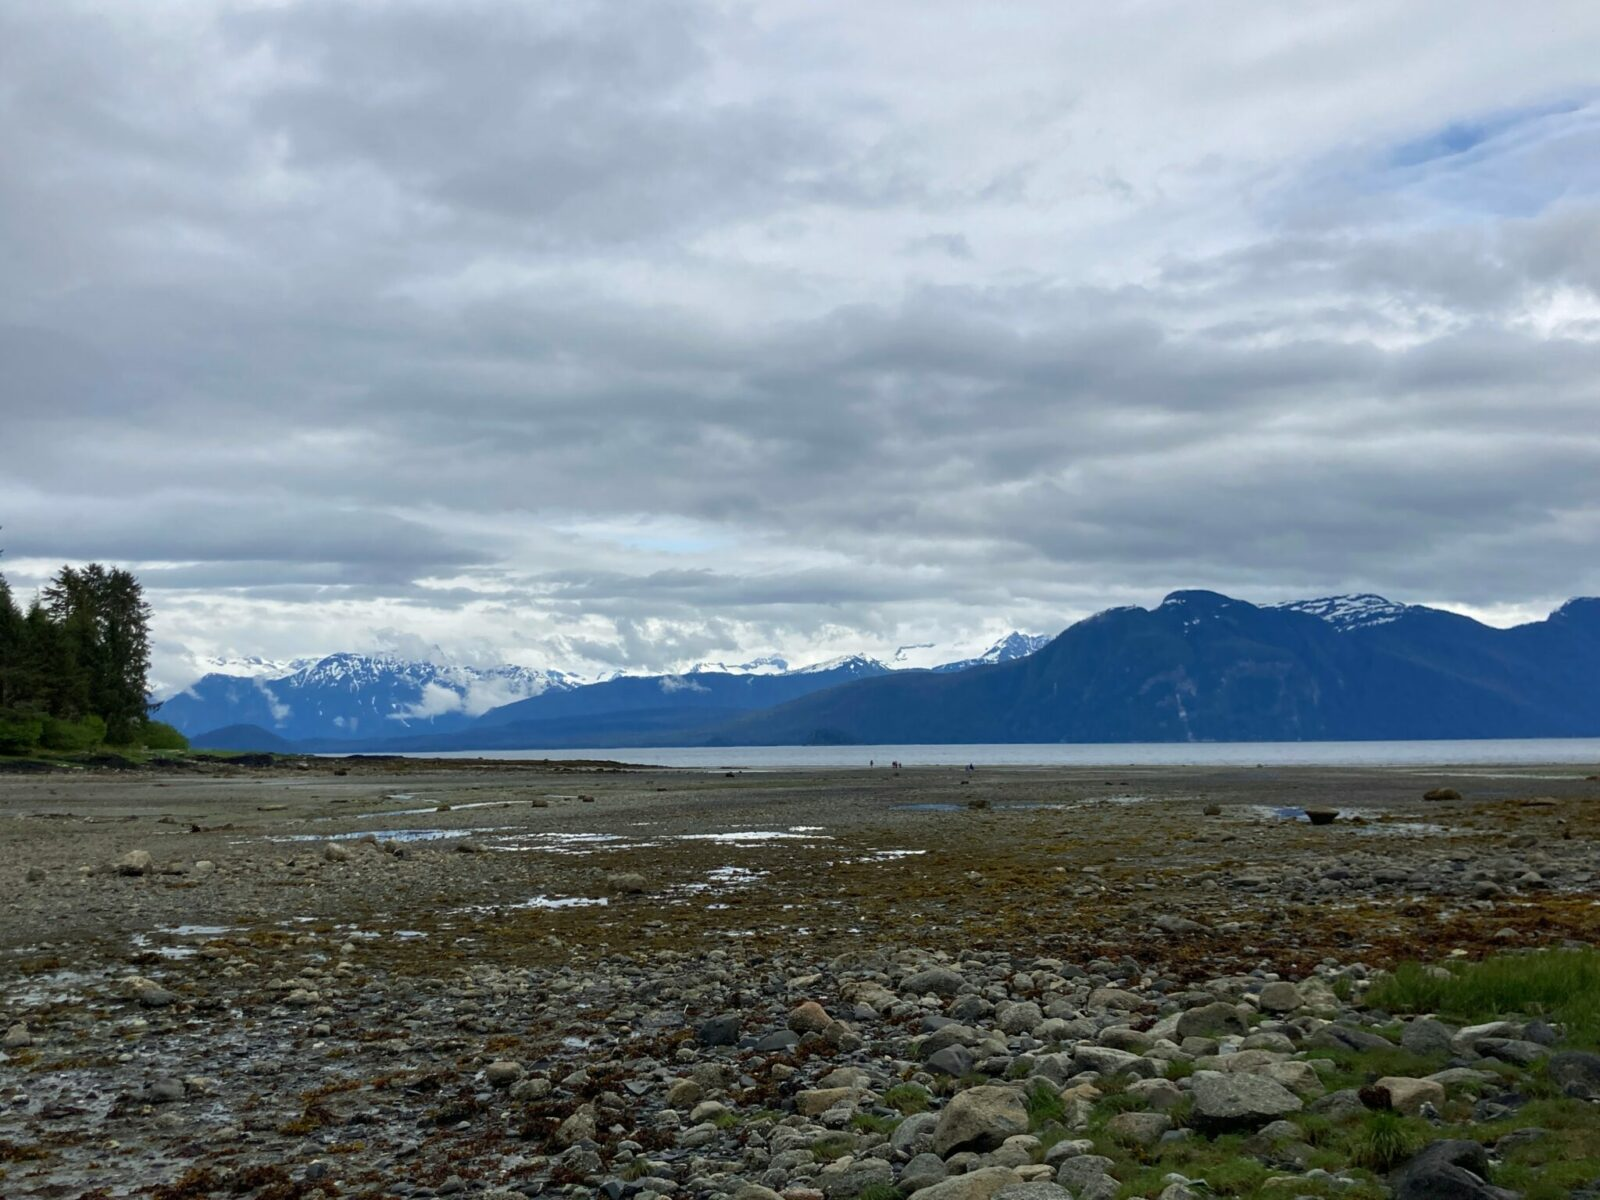 A rocky and sandy beach at low tide with distant mountains on a cloudy day